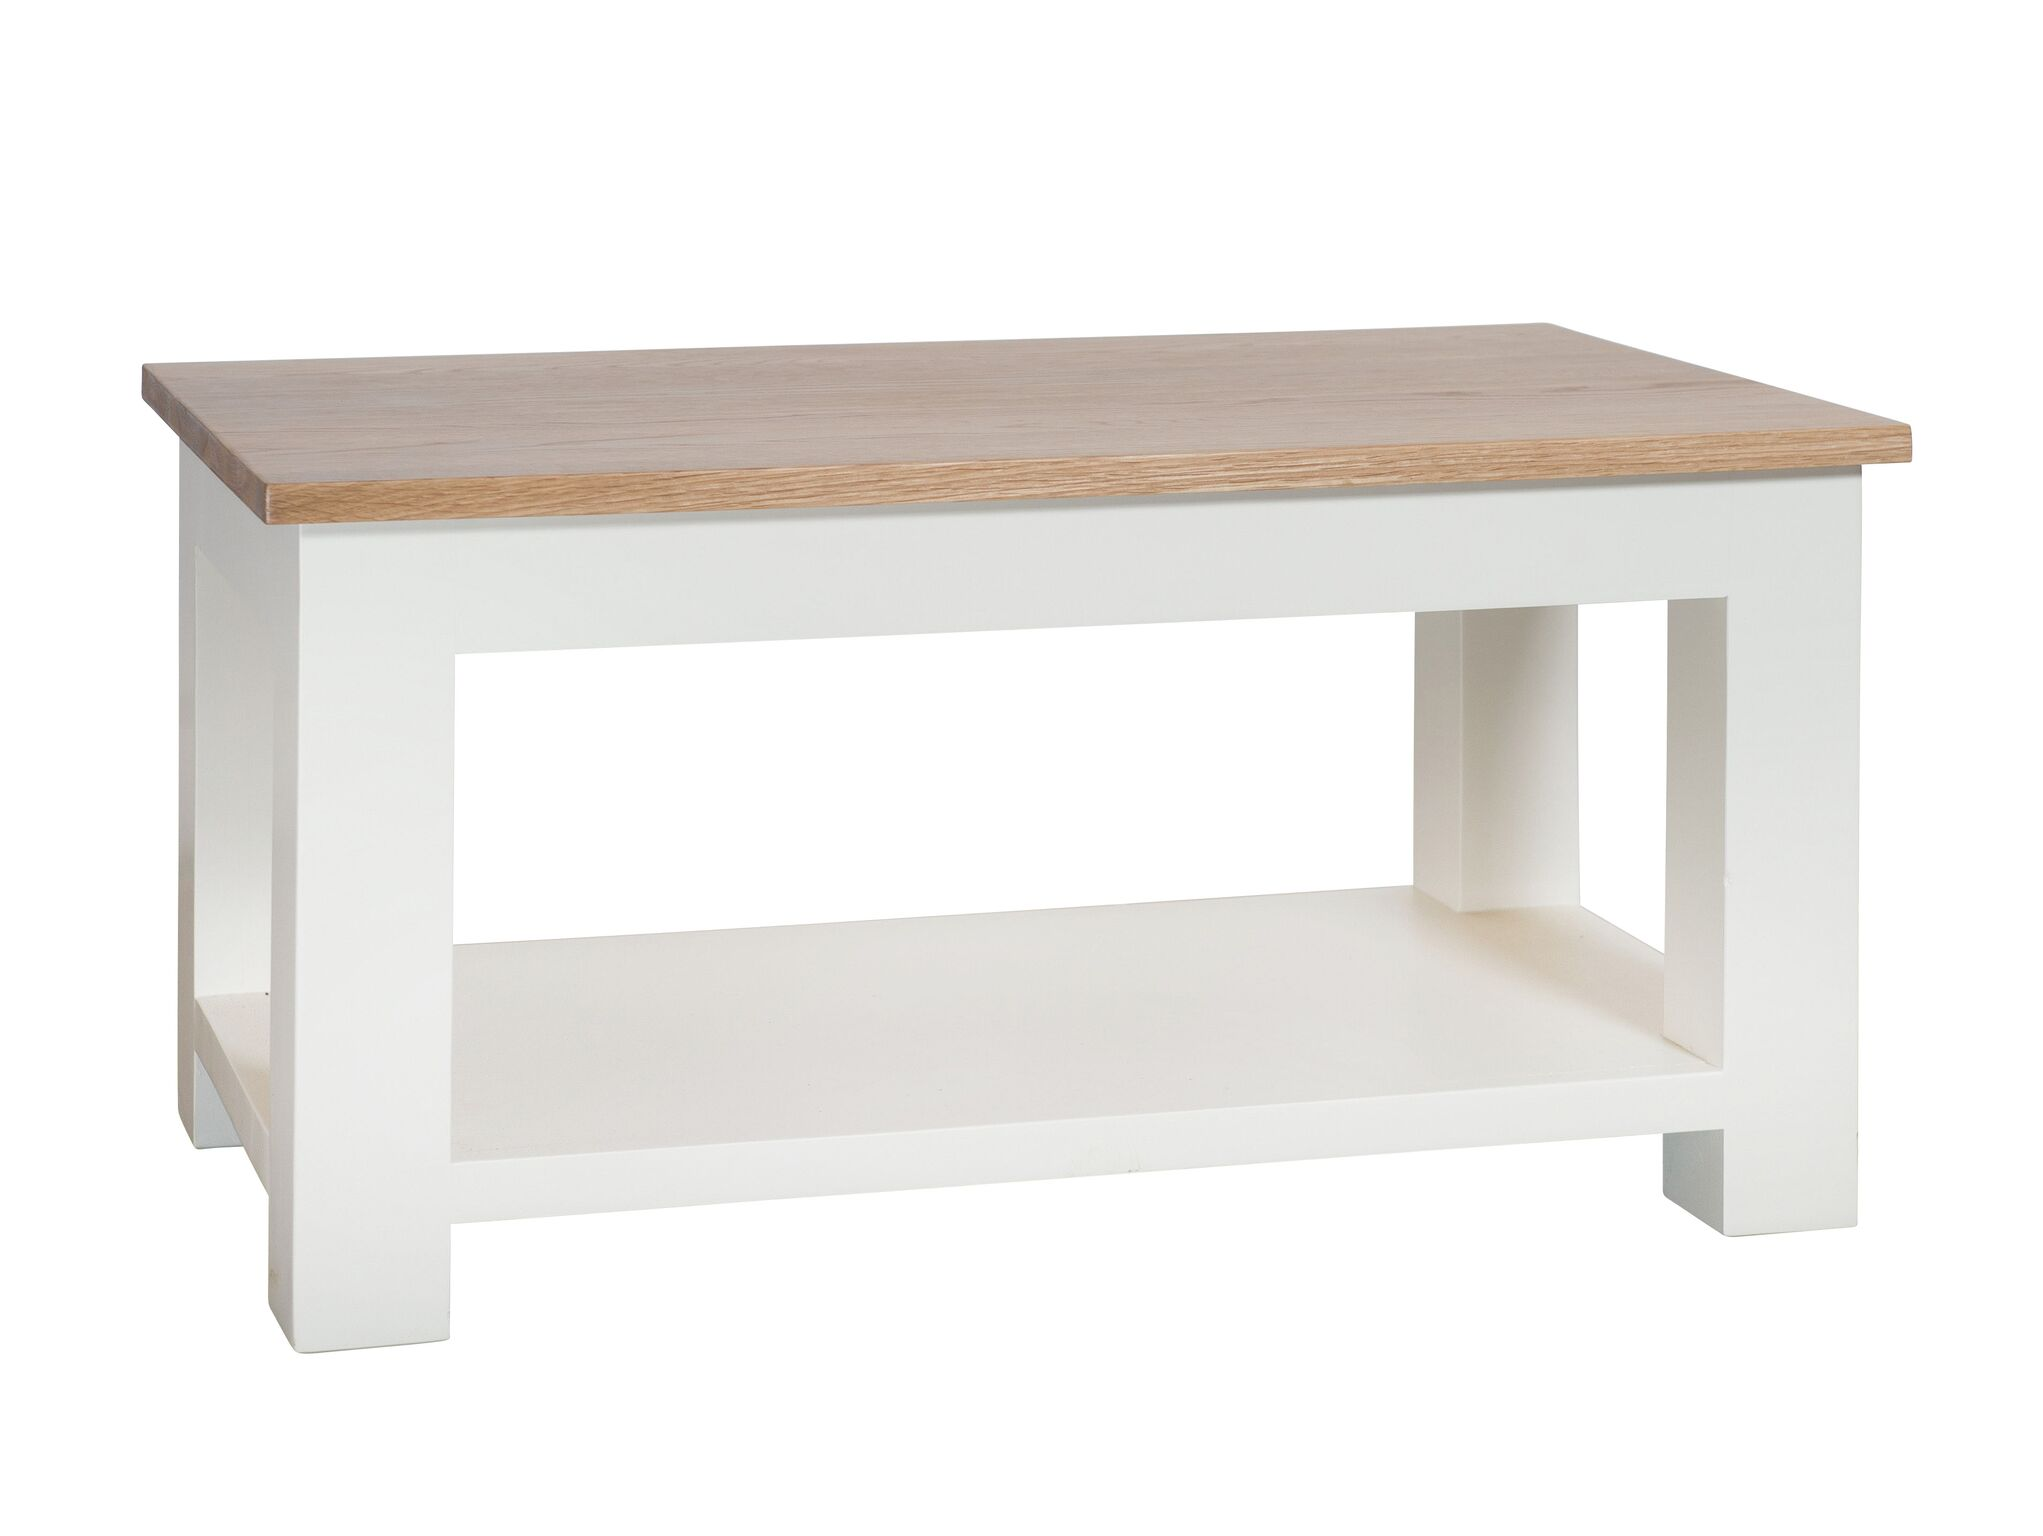 So Cream Painted Oak Top Coffee Table With Shelf